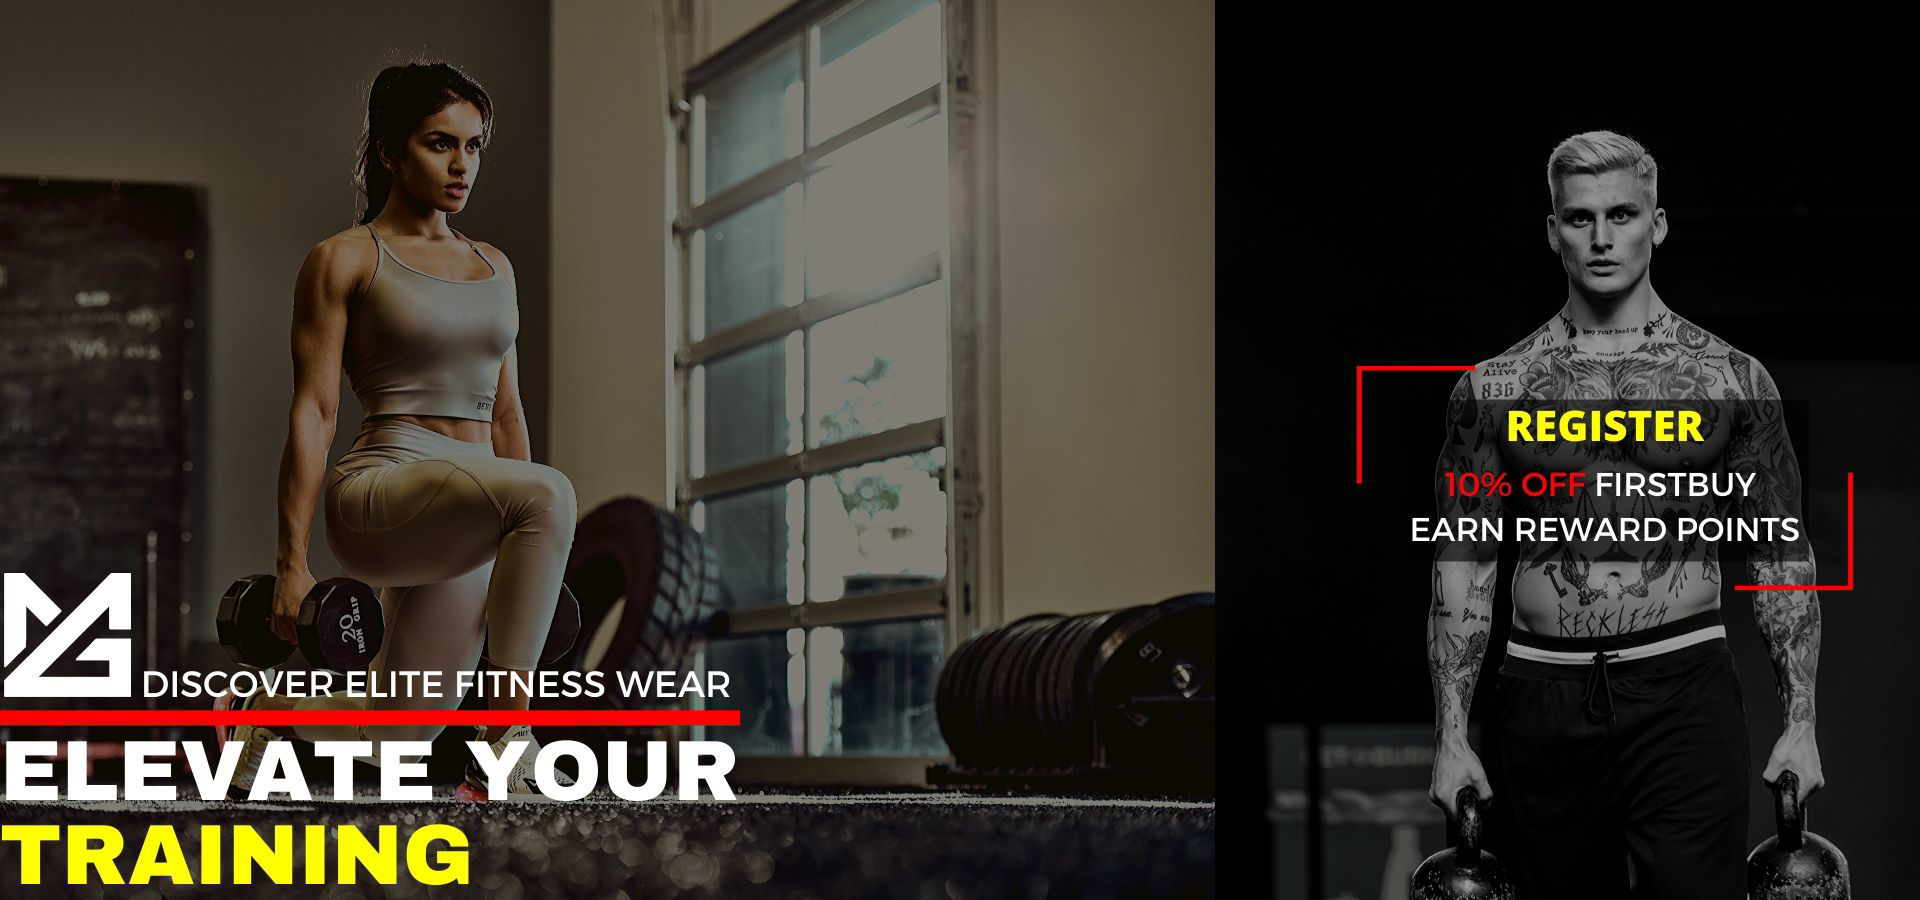 Elite Fitness Ecommerce in UAE with best rated activewear brands at super saver prices with worldwild shipping